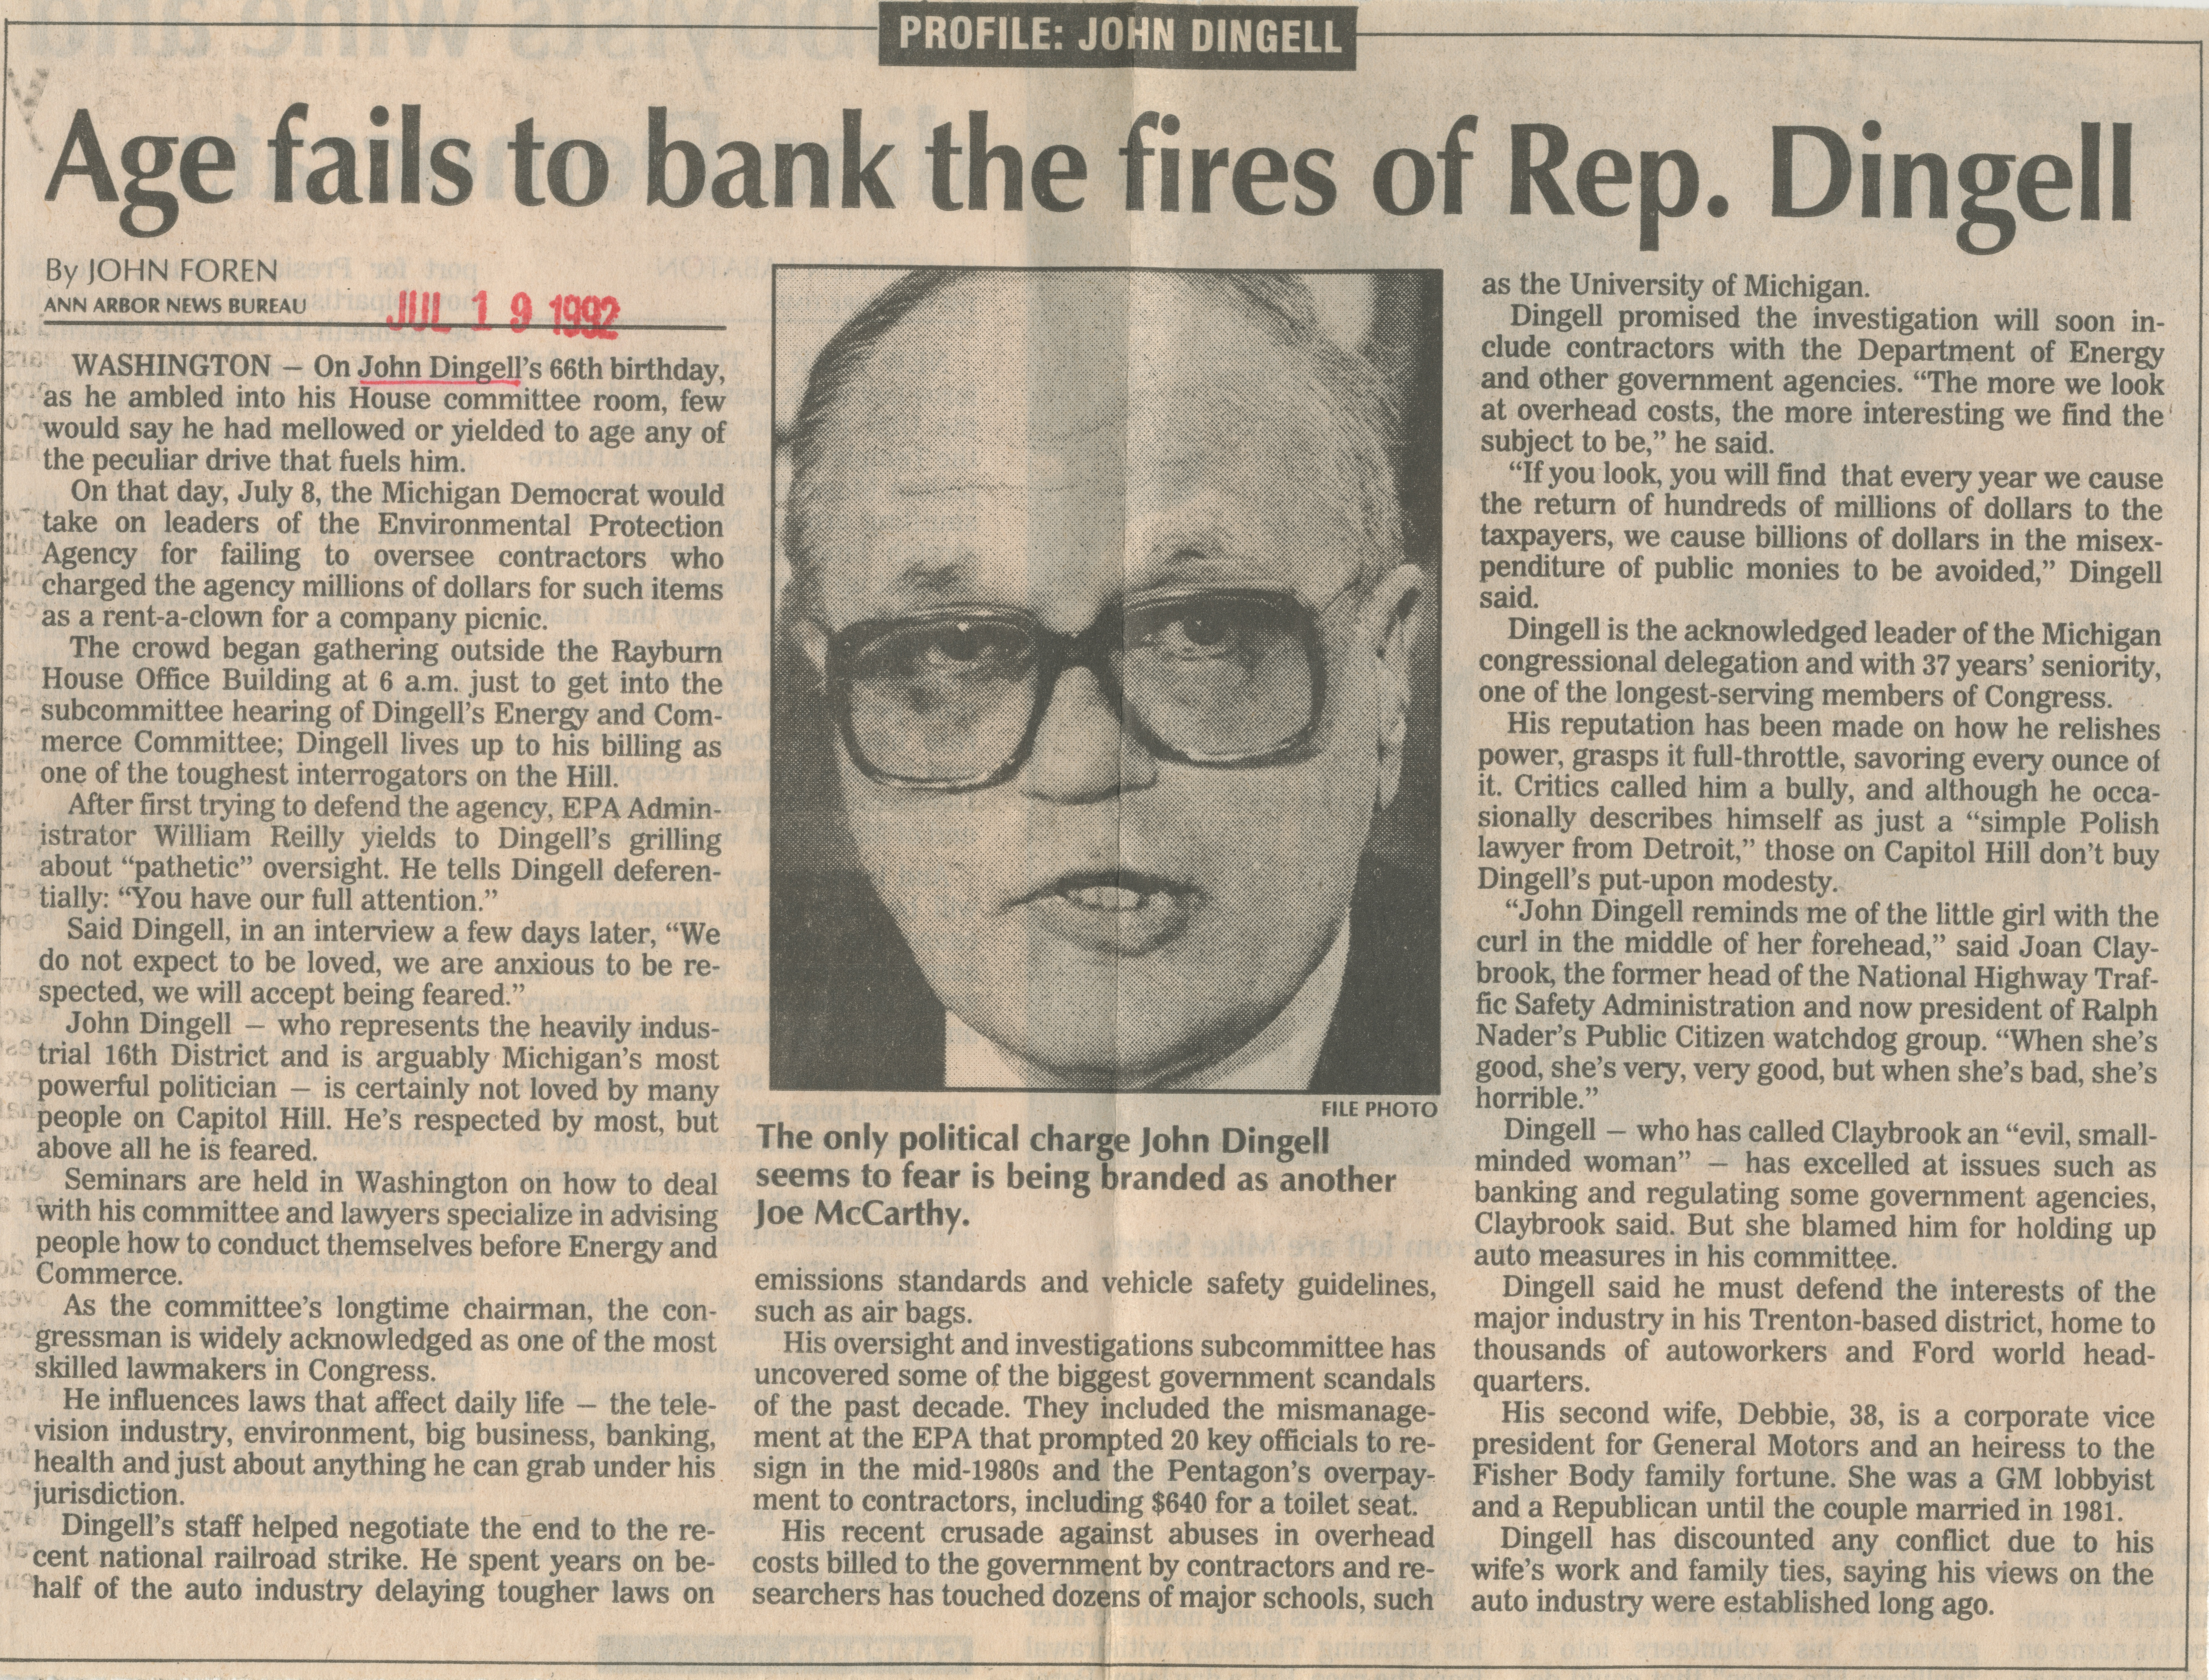 Age fails to bank the fires of Rep. Dingell image